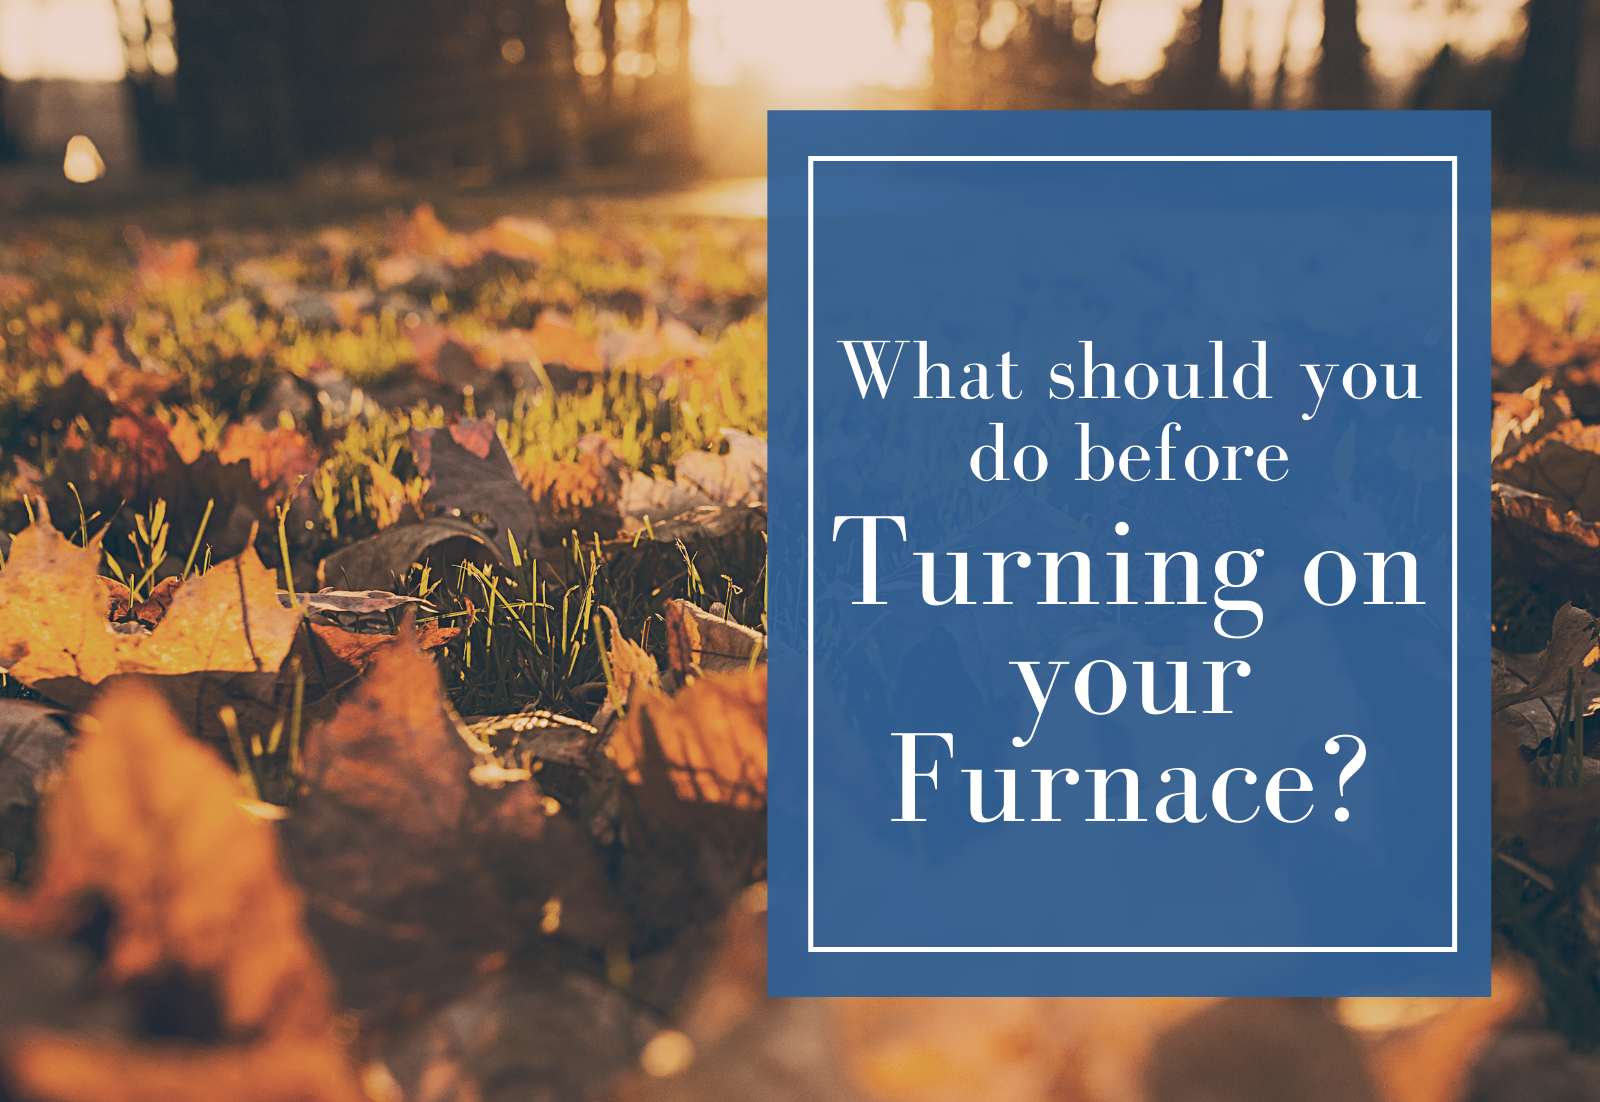 What should you do before turning on your furnace?